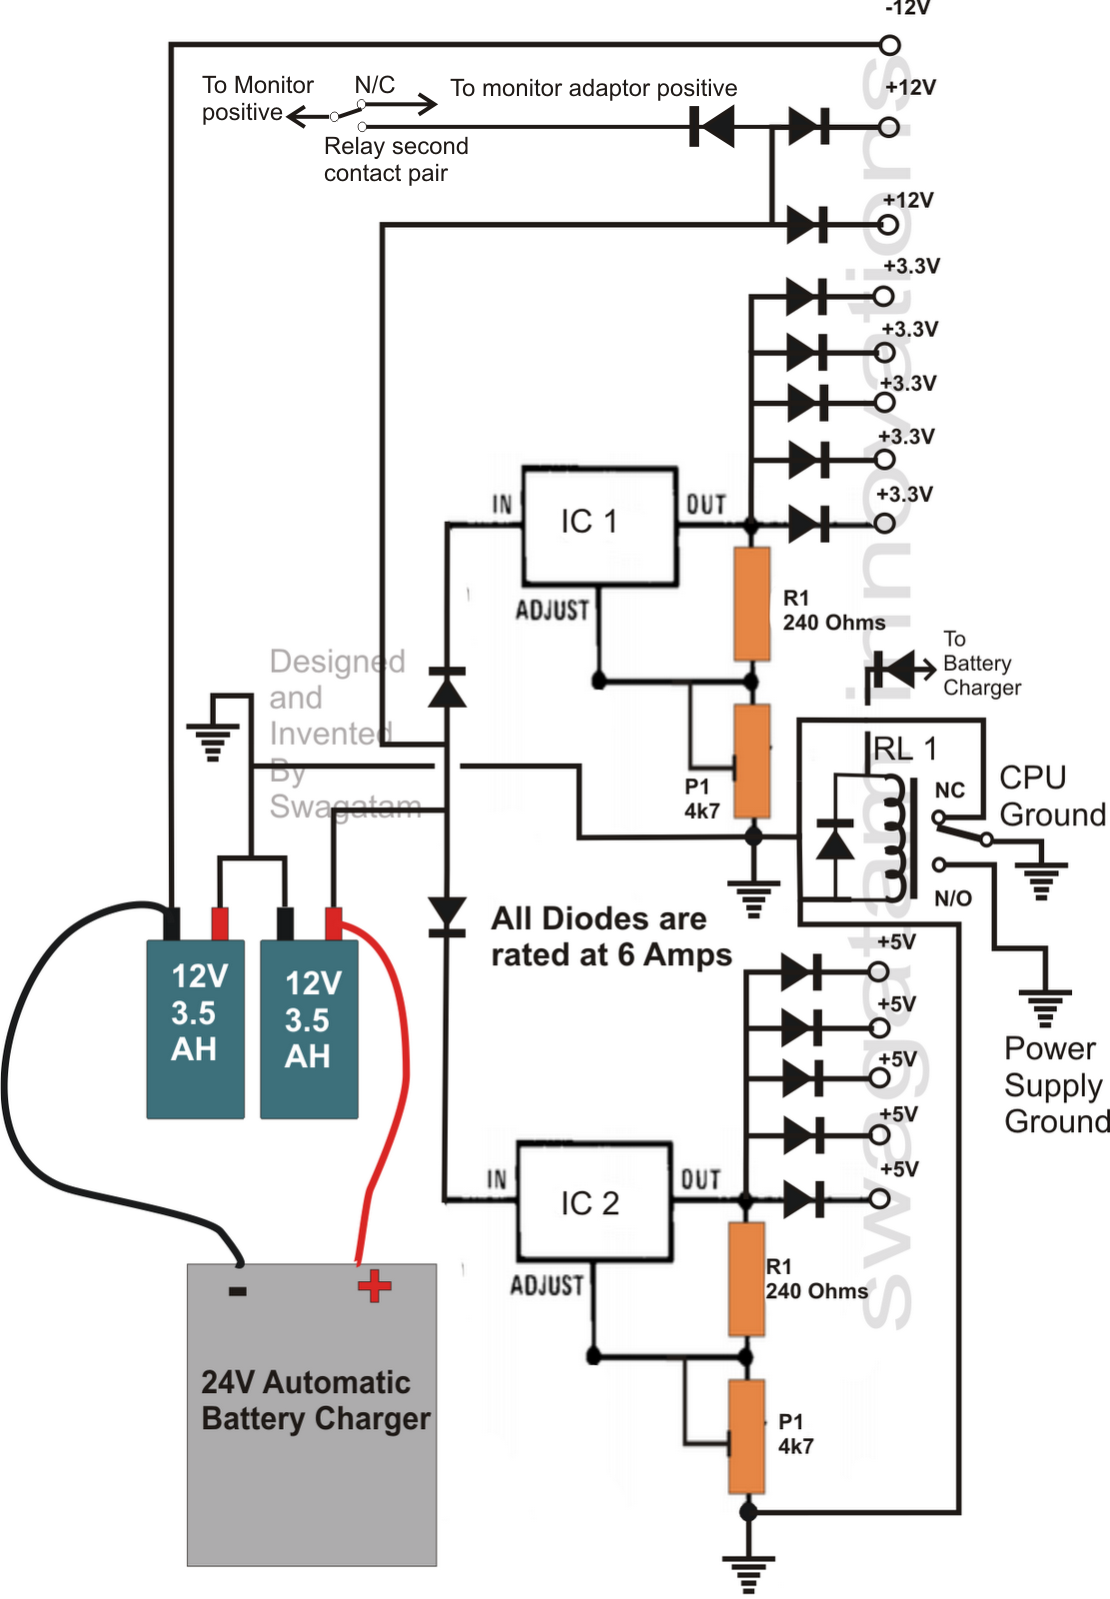 Home Ups Inverter Wiring Diagram 1969 Ford Mustang Transformerless Circuit For Computers Cpu